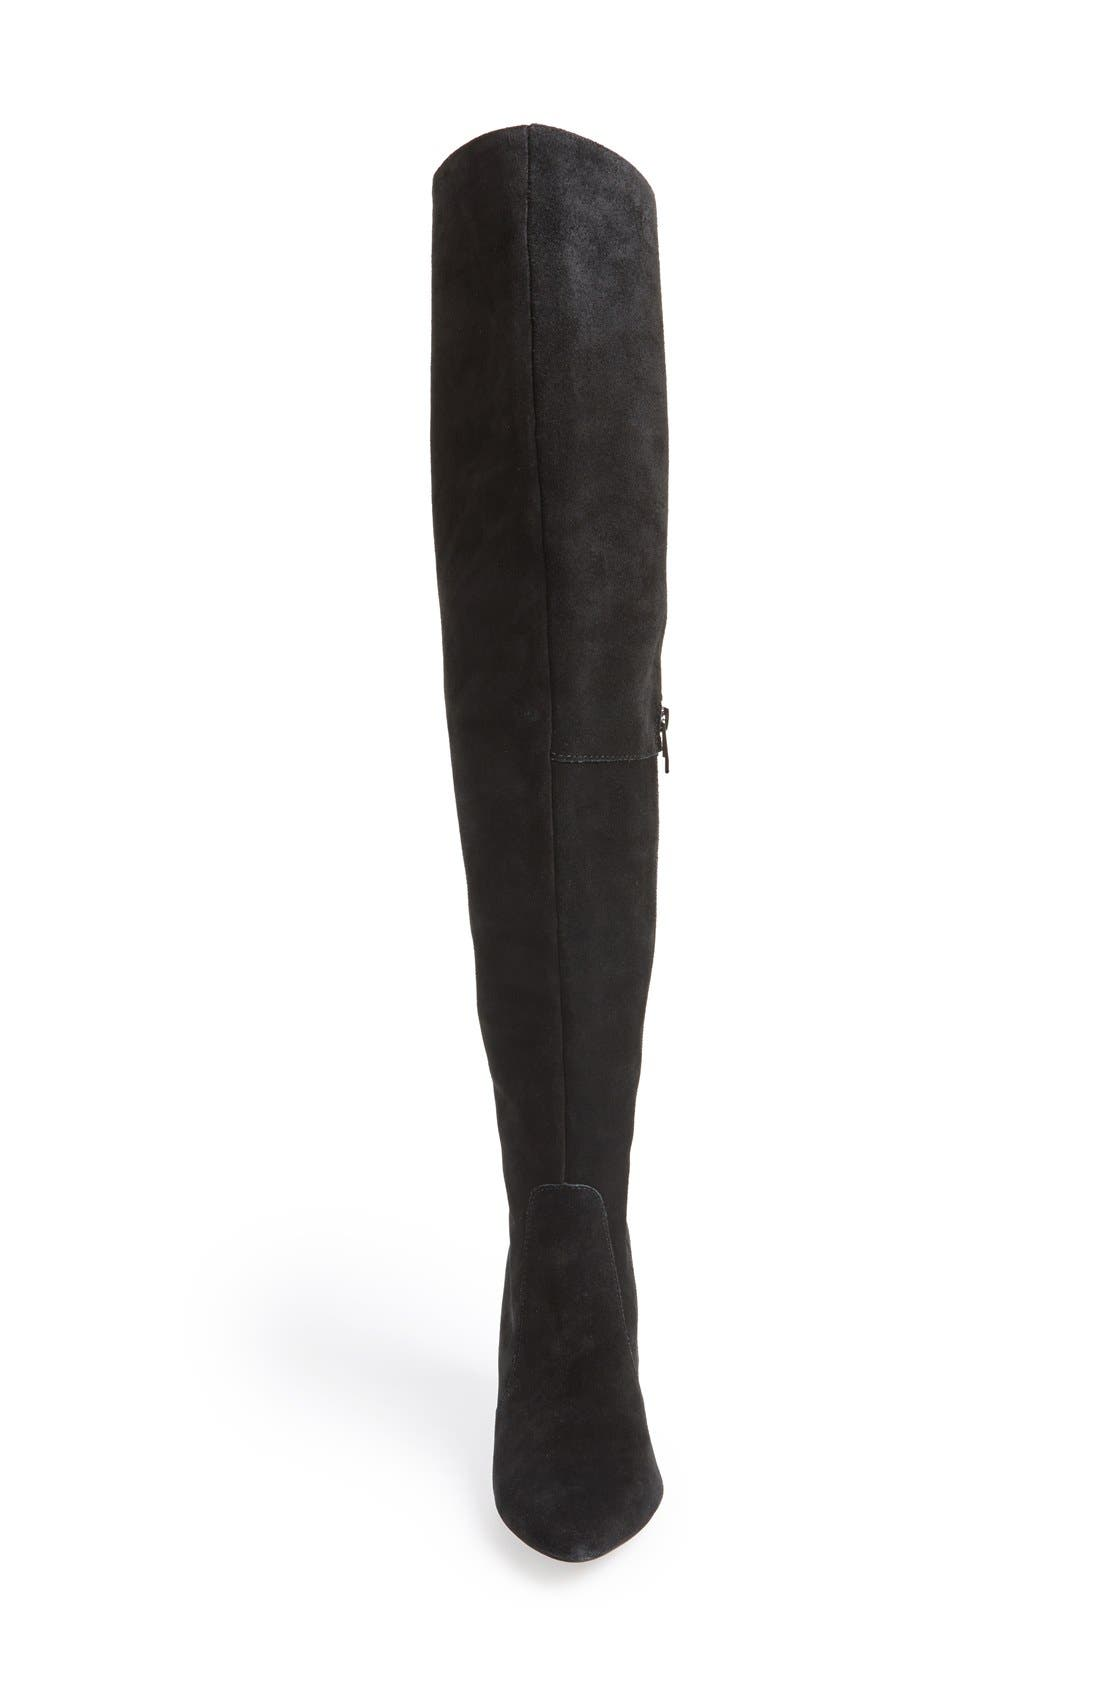 Alternate Image 3  - Vince Camuto 'Hollie' Over the Knee Pointy Toe Suede Boot (Women)